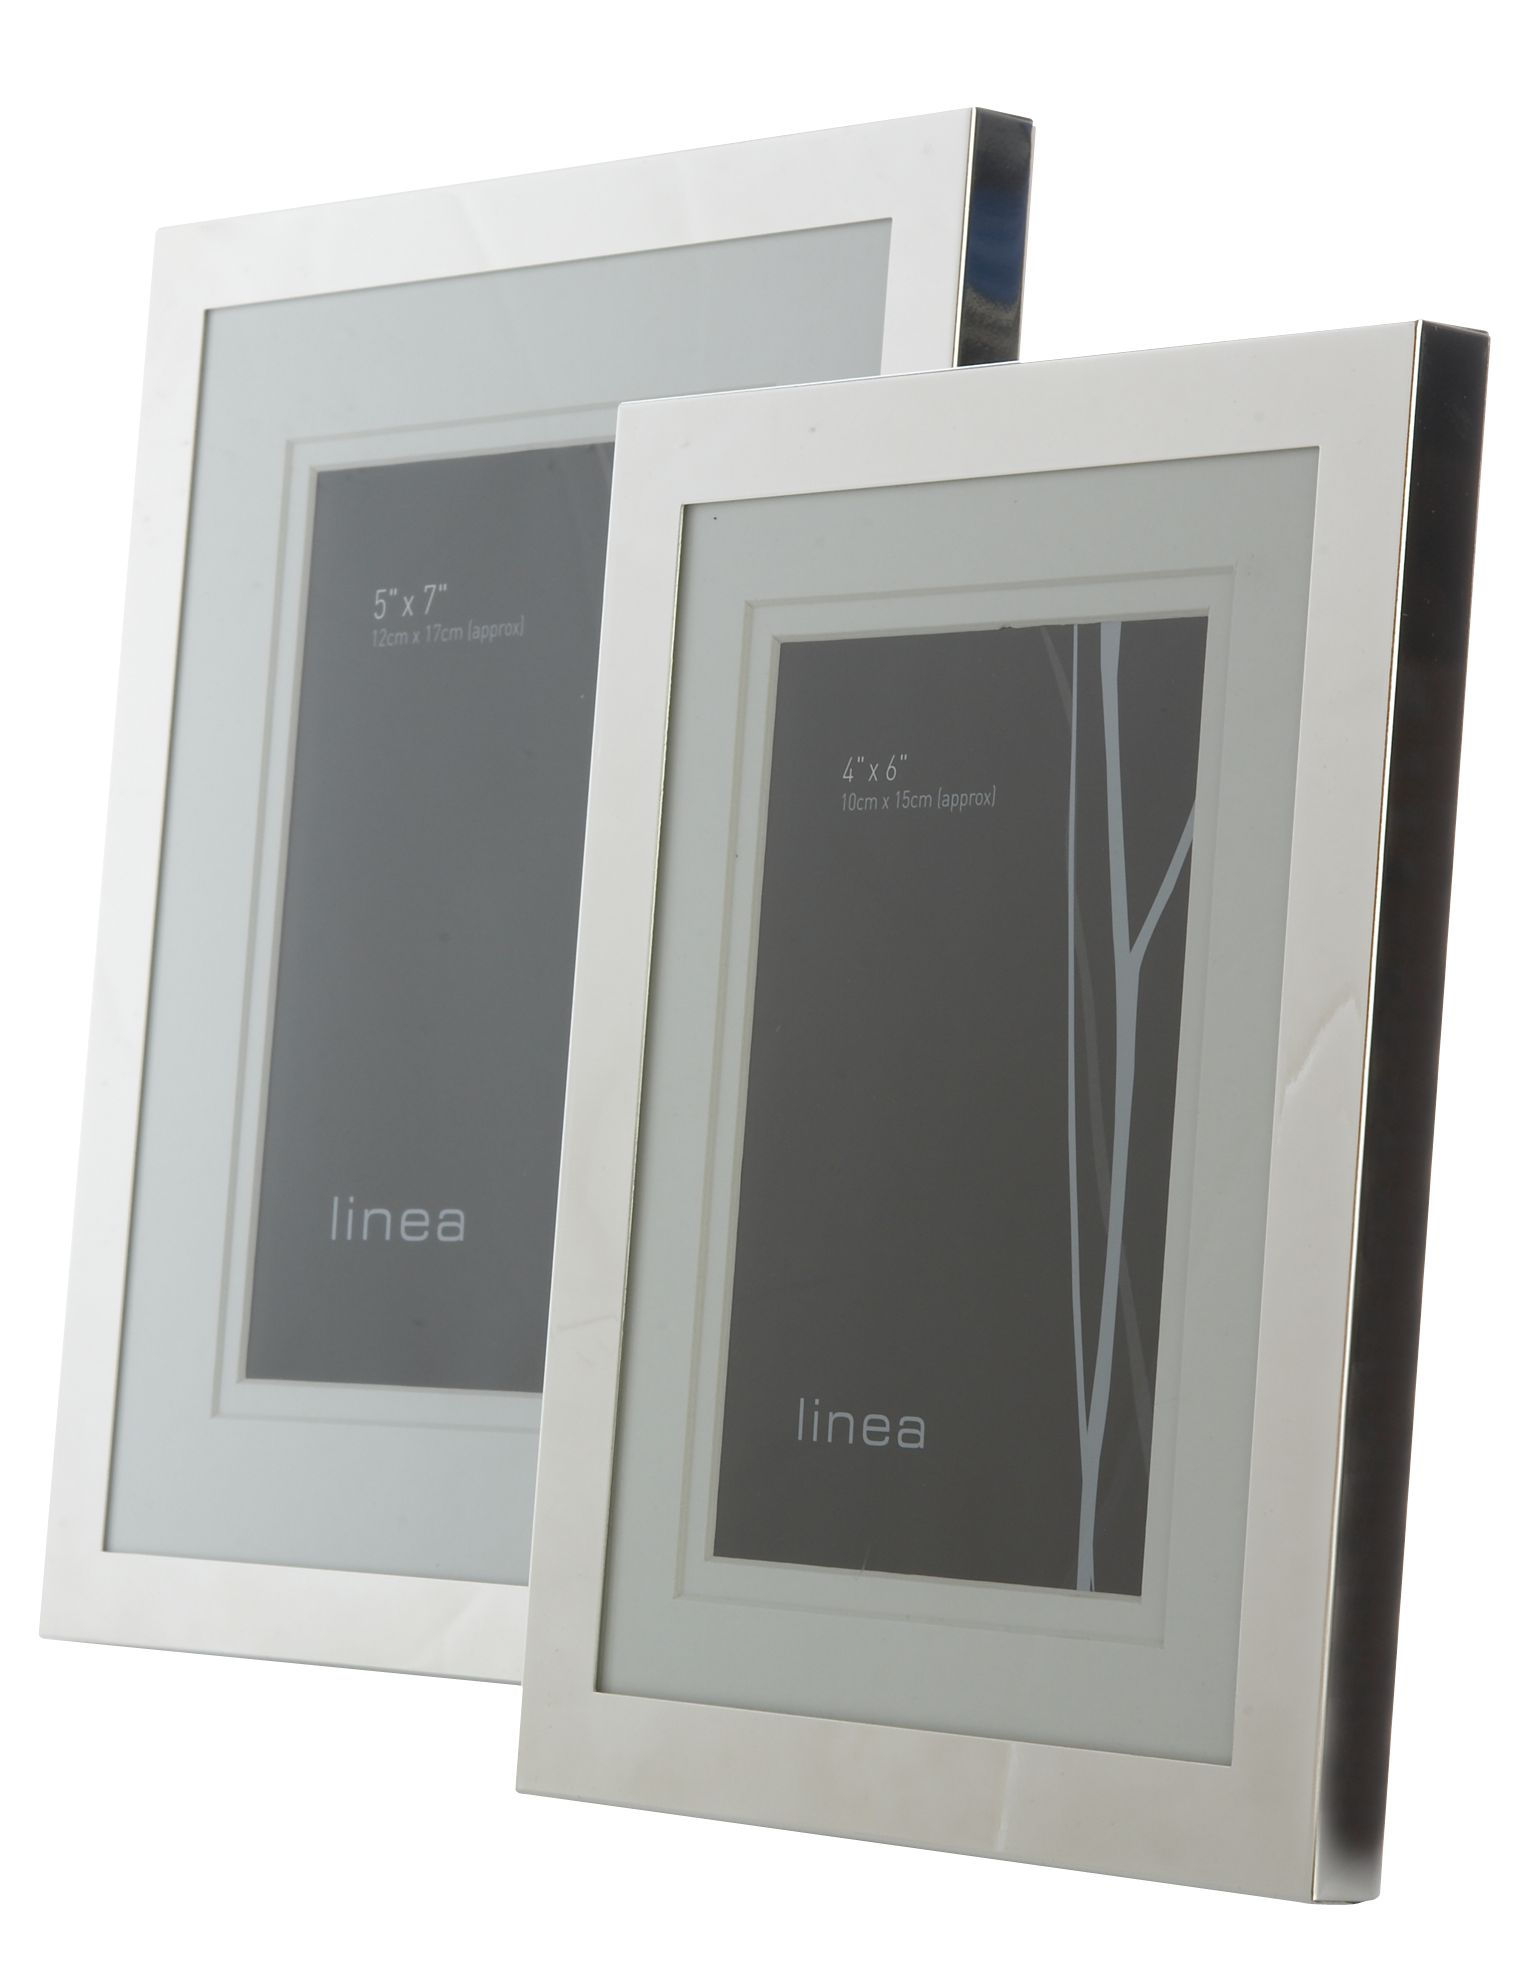 4 x 6 modern silver plated photo frame